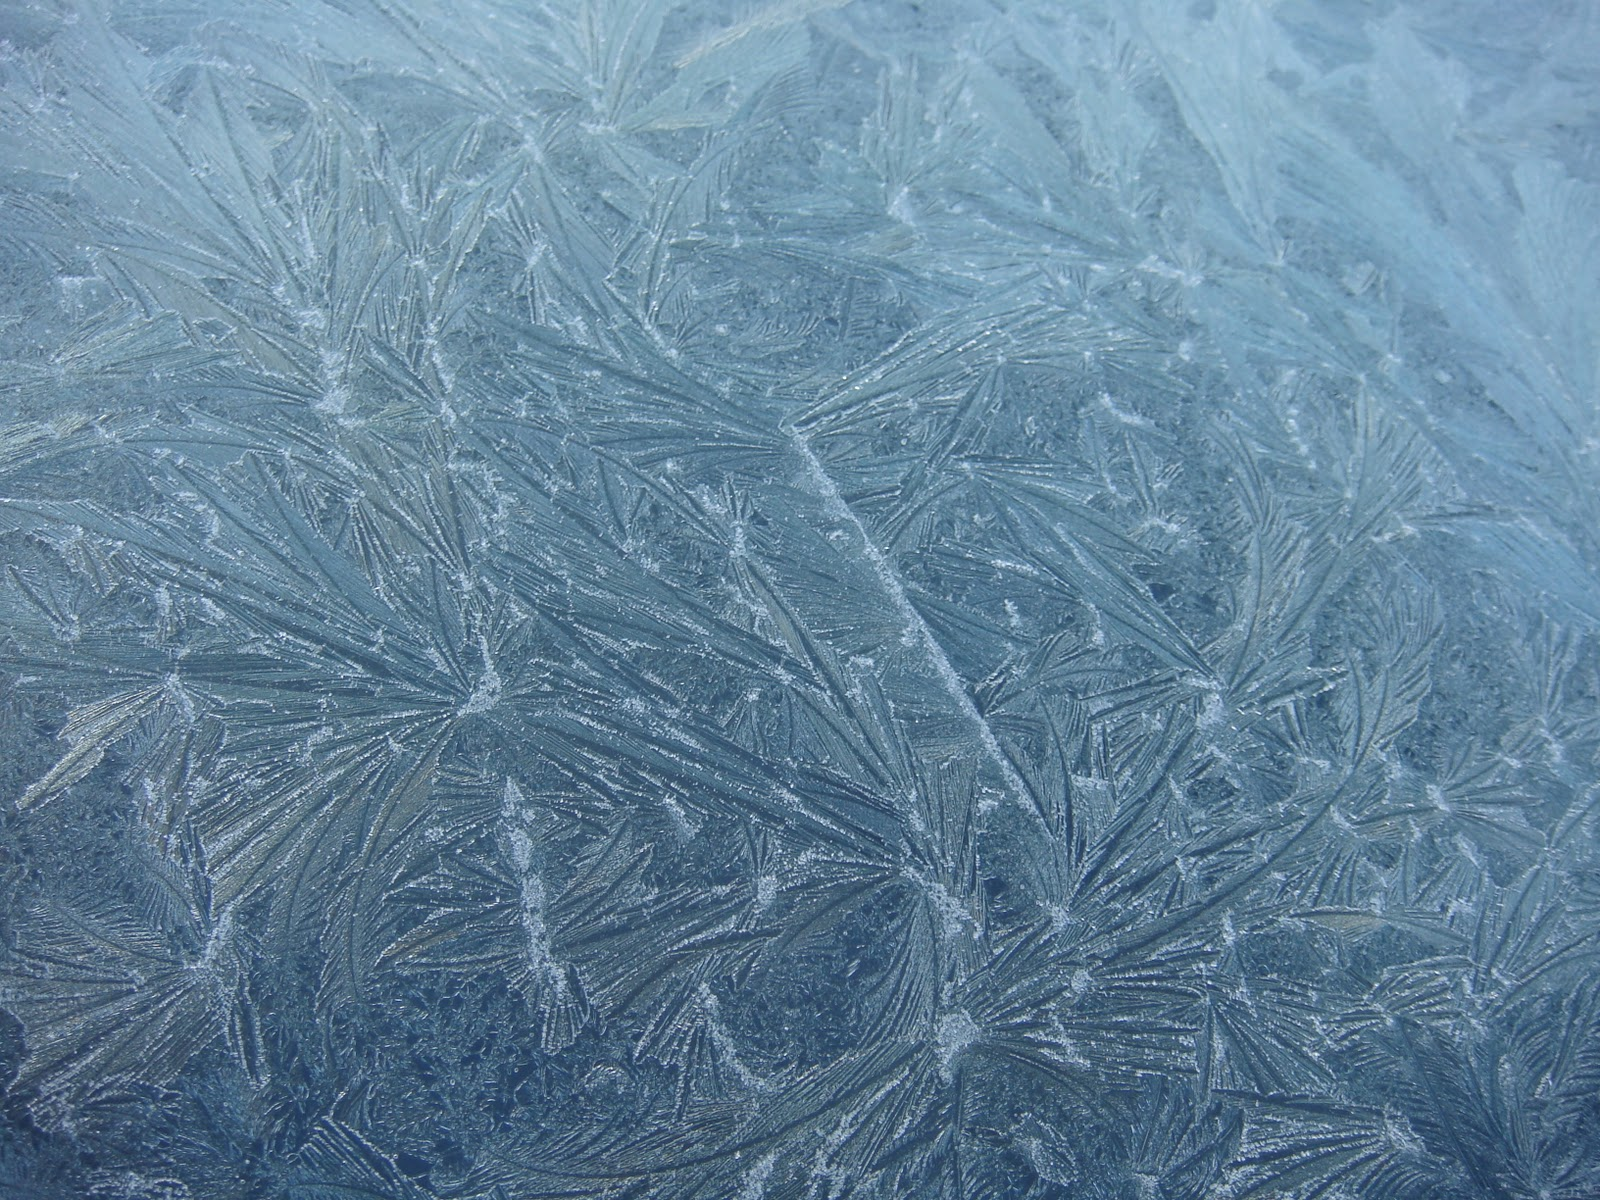 icy-windscreen